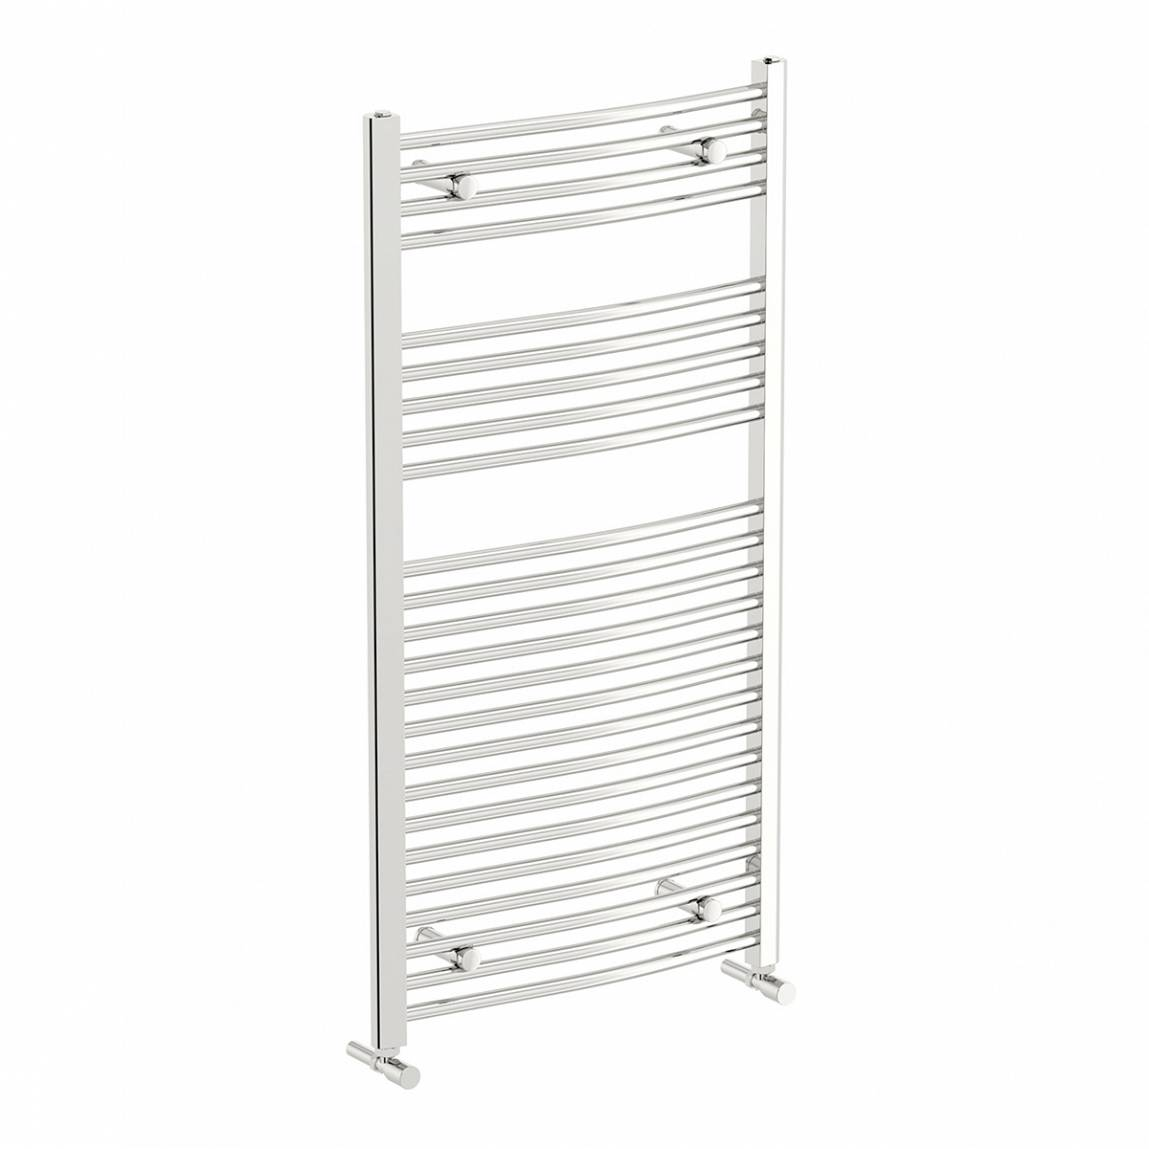 Image of Curved Heated Towel Rail 1150 x 600 PLUS Valves